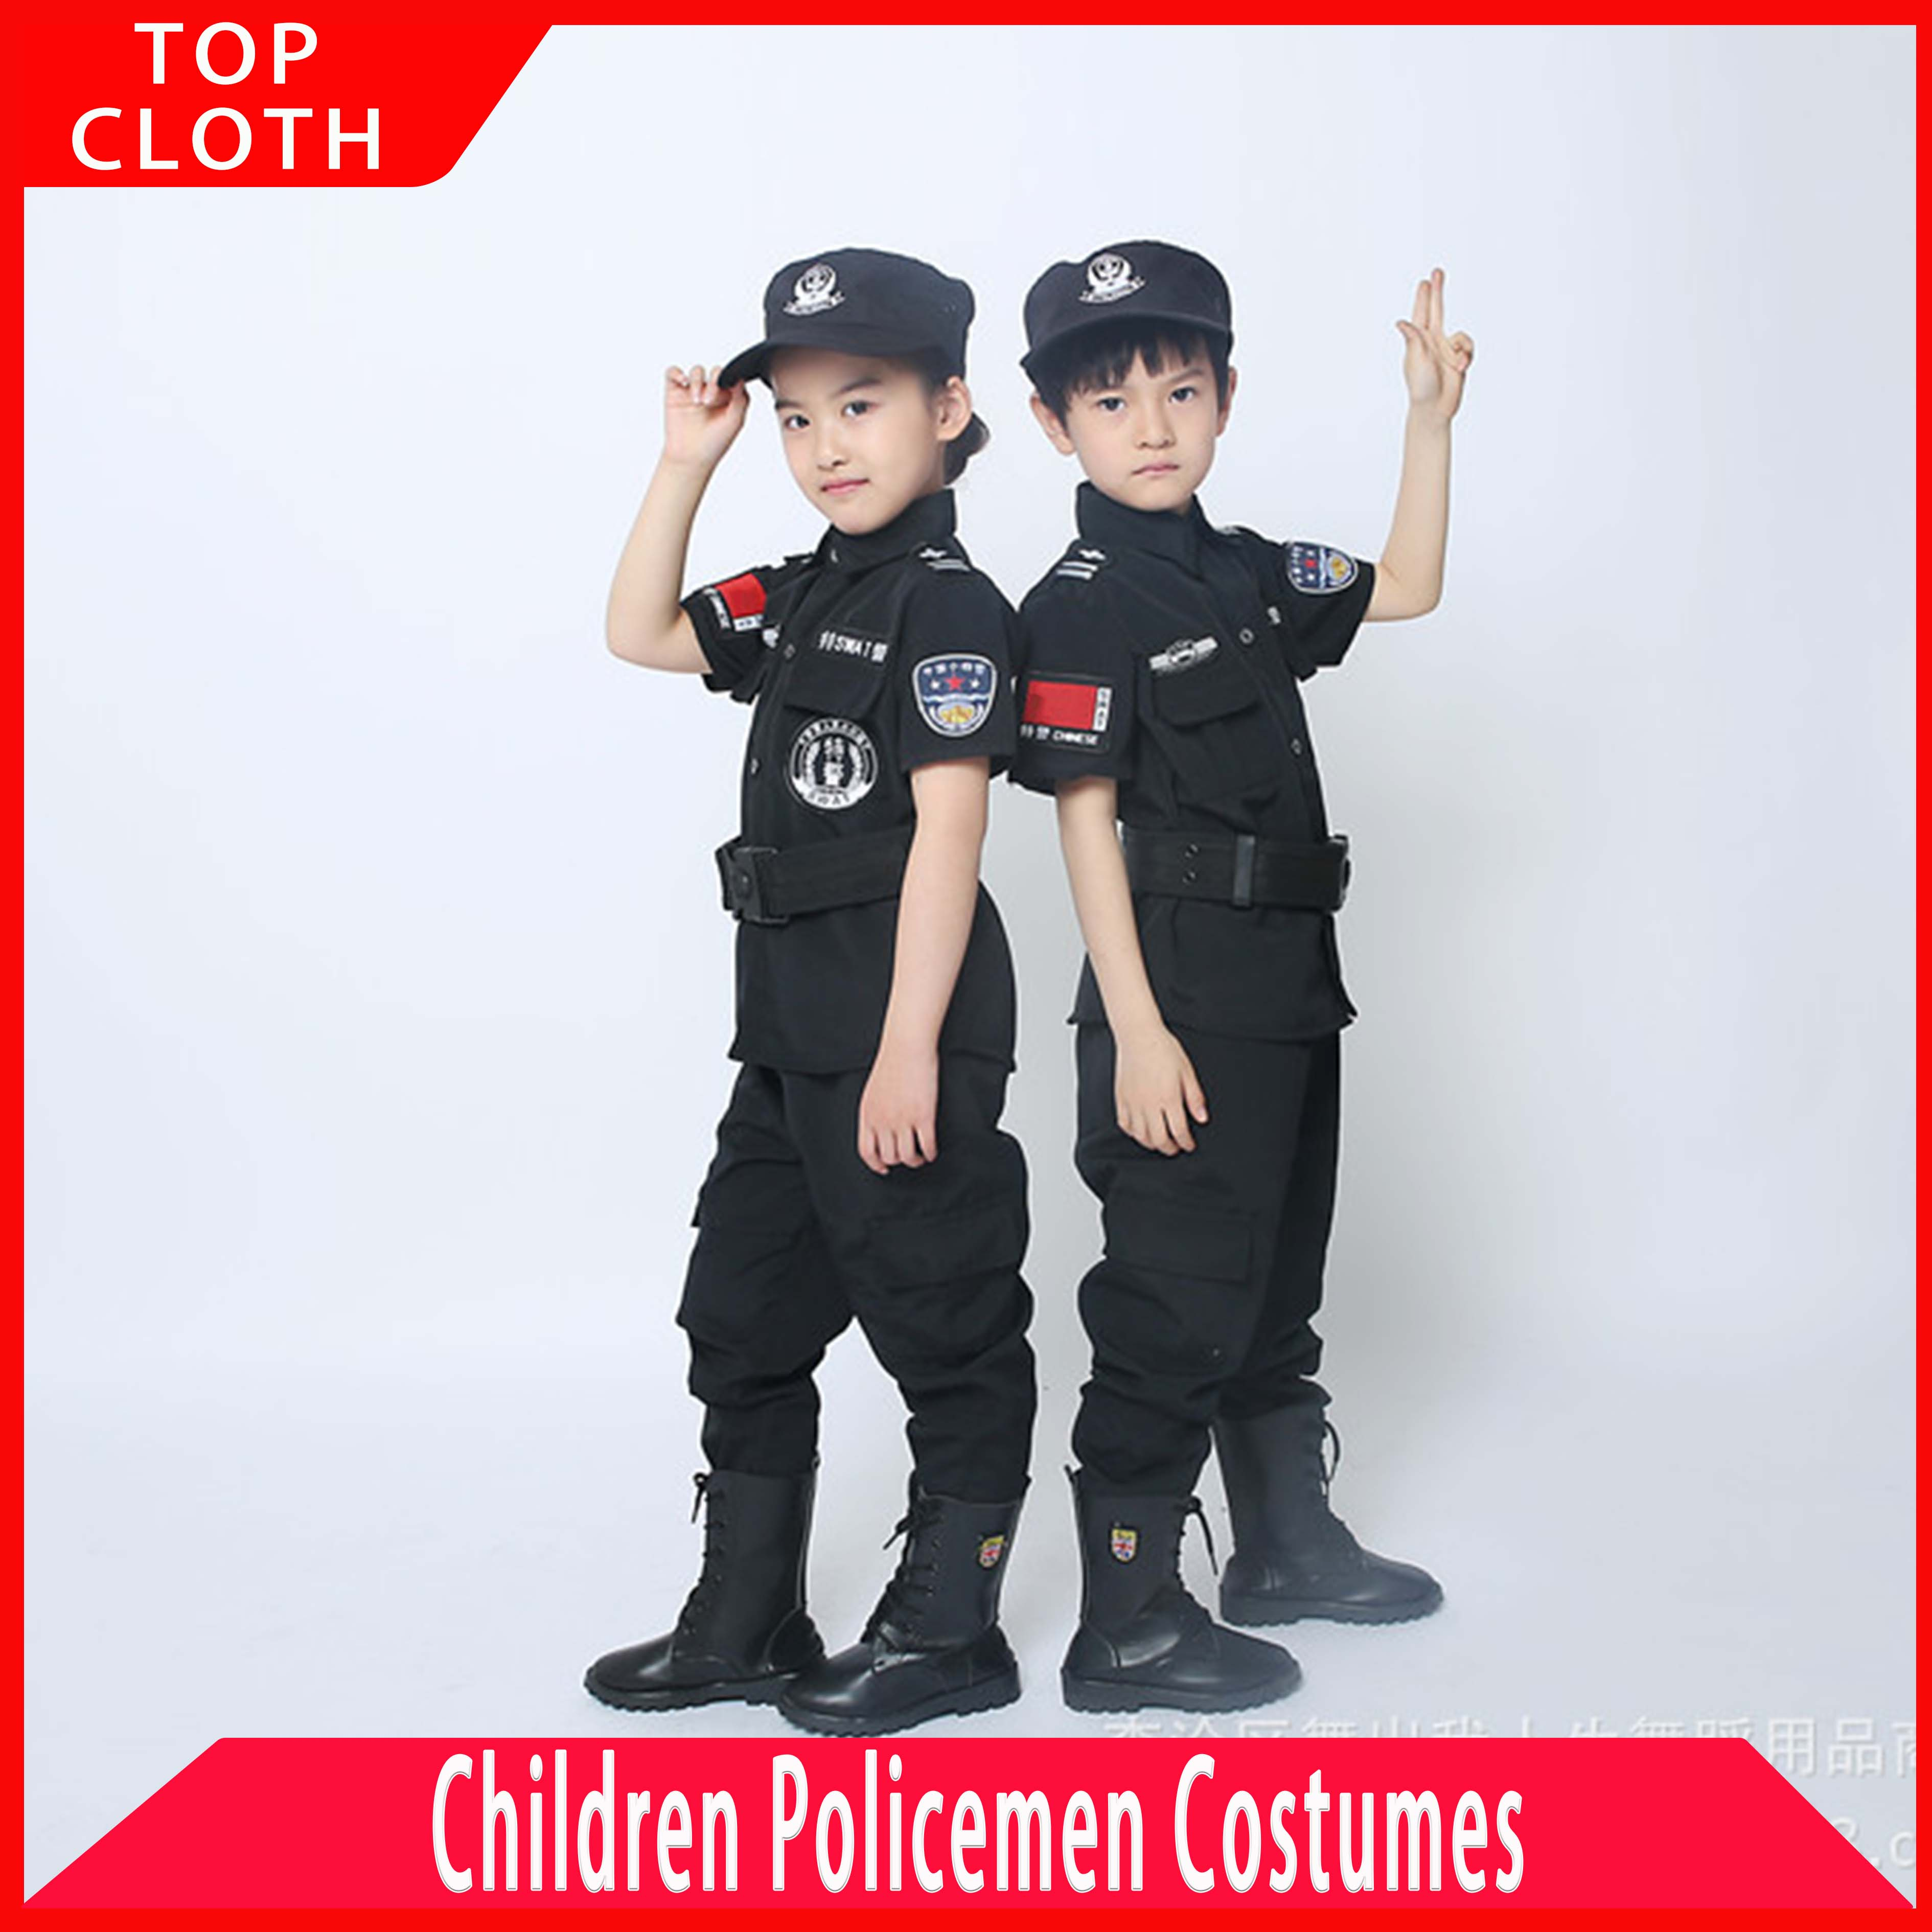 Special Police Clothing For Boy Girl Policemen Uniform Children's Birthday Xmas Gift Cosplay Costume Kids SWAT Army Performance